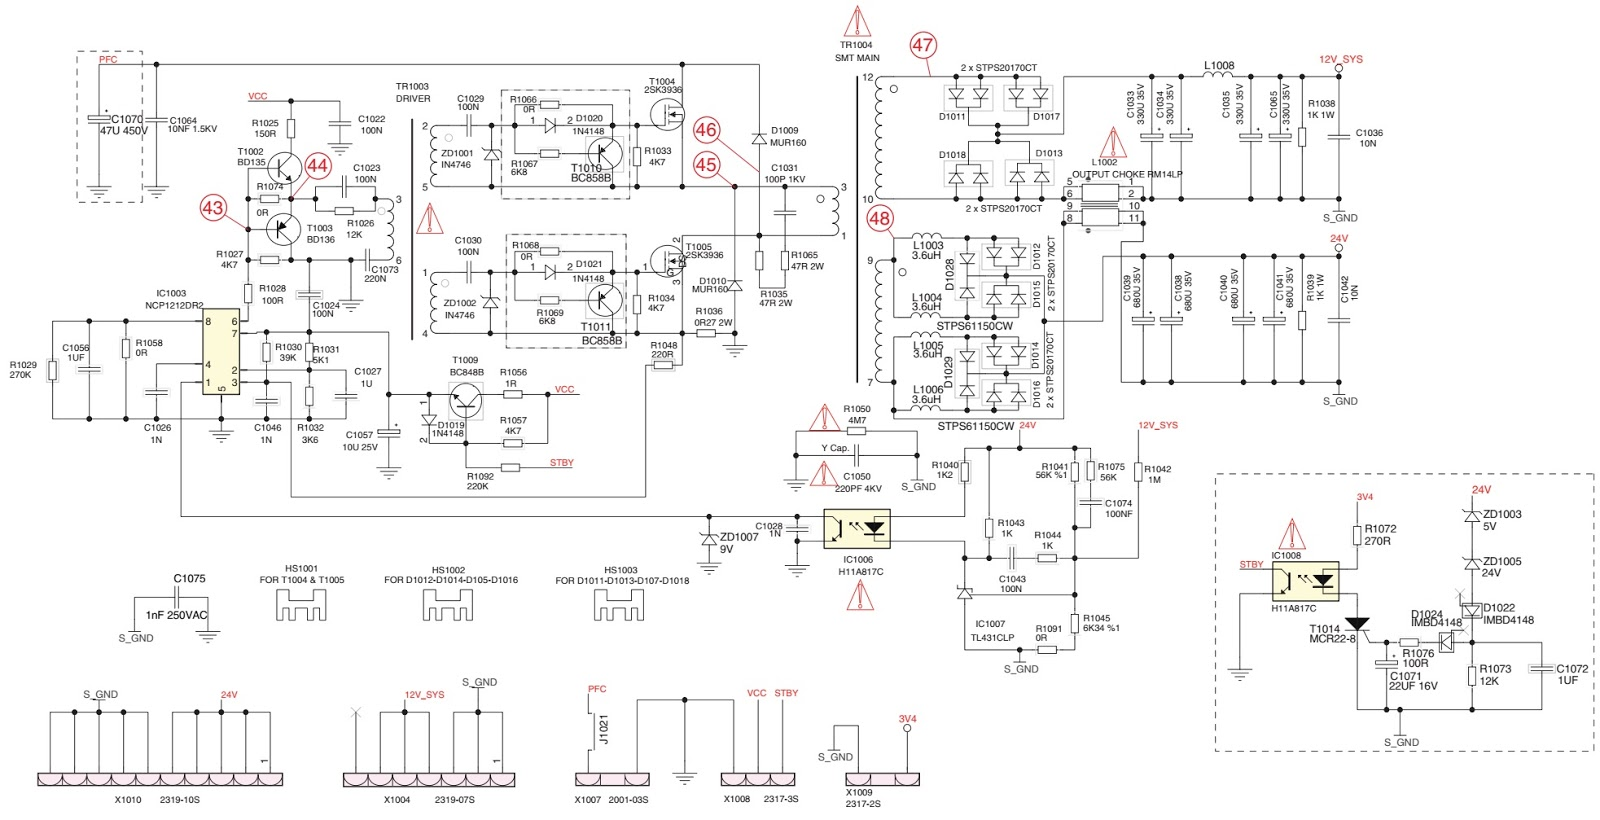 medium resolution of grundig lcd tv smps schematics circuit diagrams electronic figure 2 block diagram of an lcd tv power supply